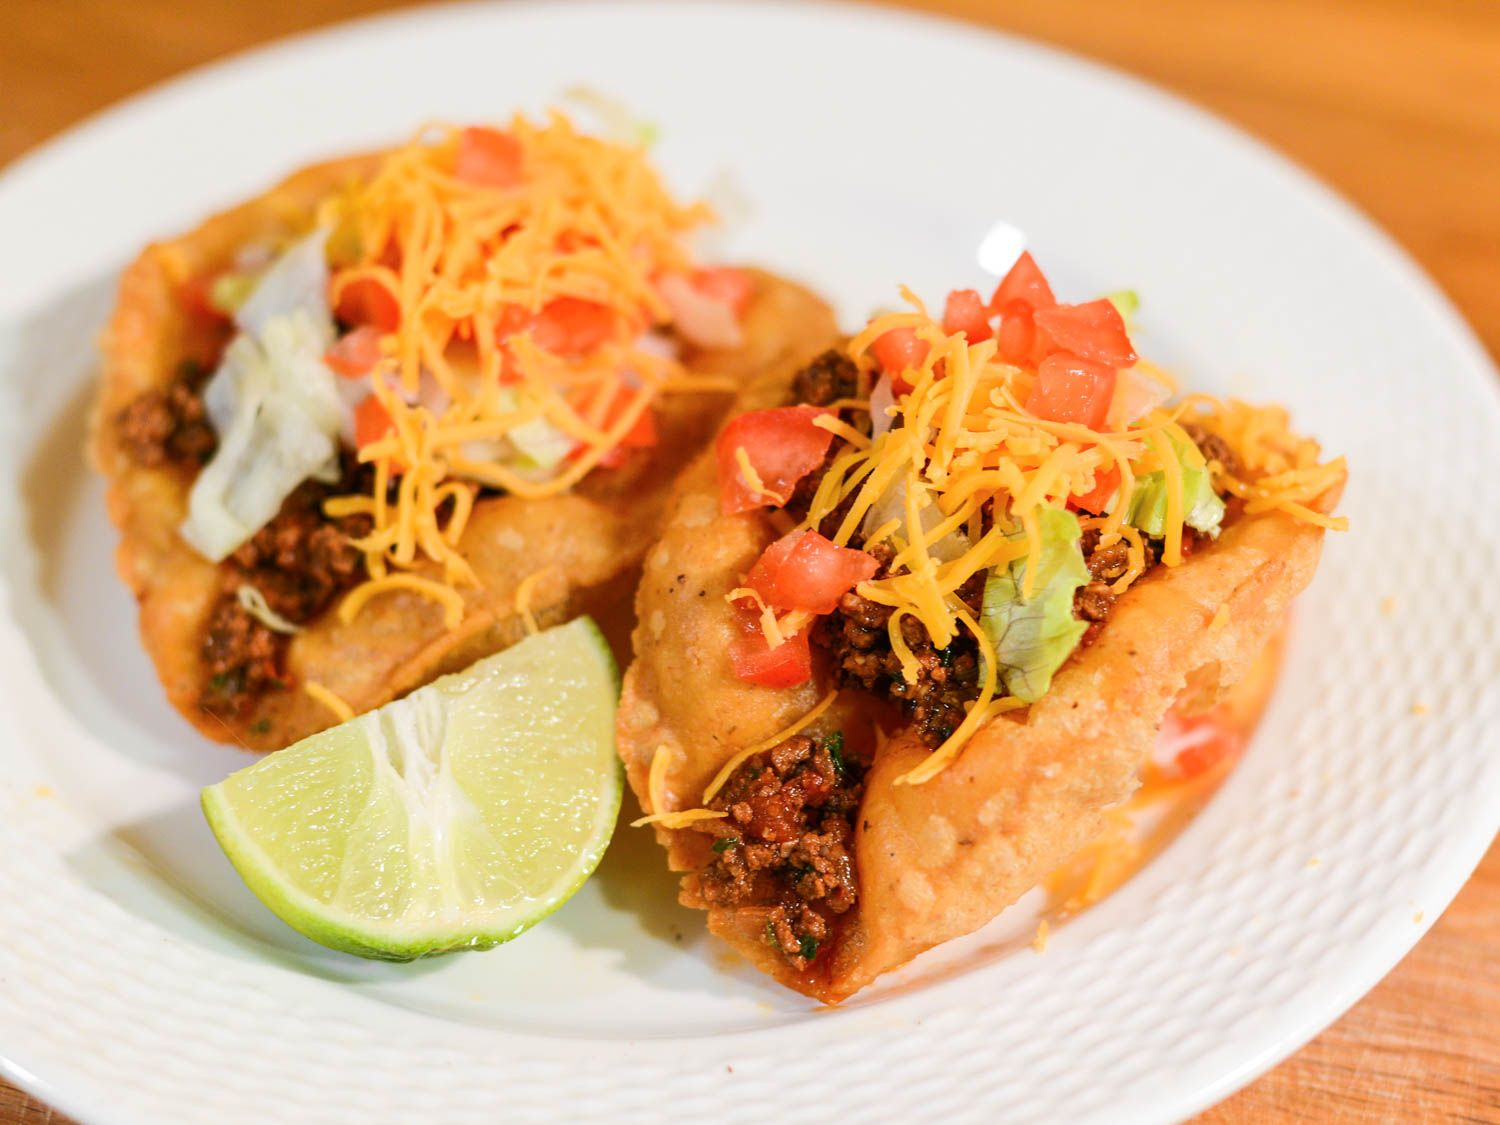 Why You Should Turn Your Taco Night Into Puffy Taco Night